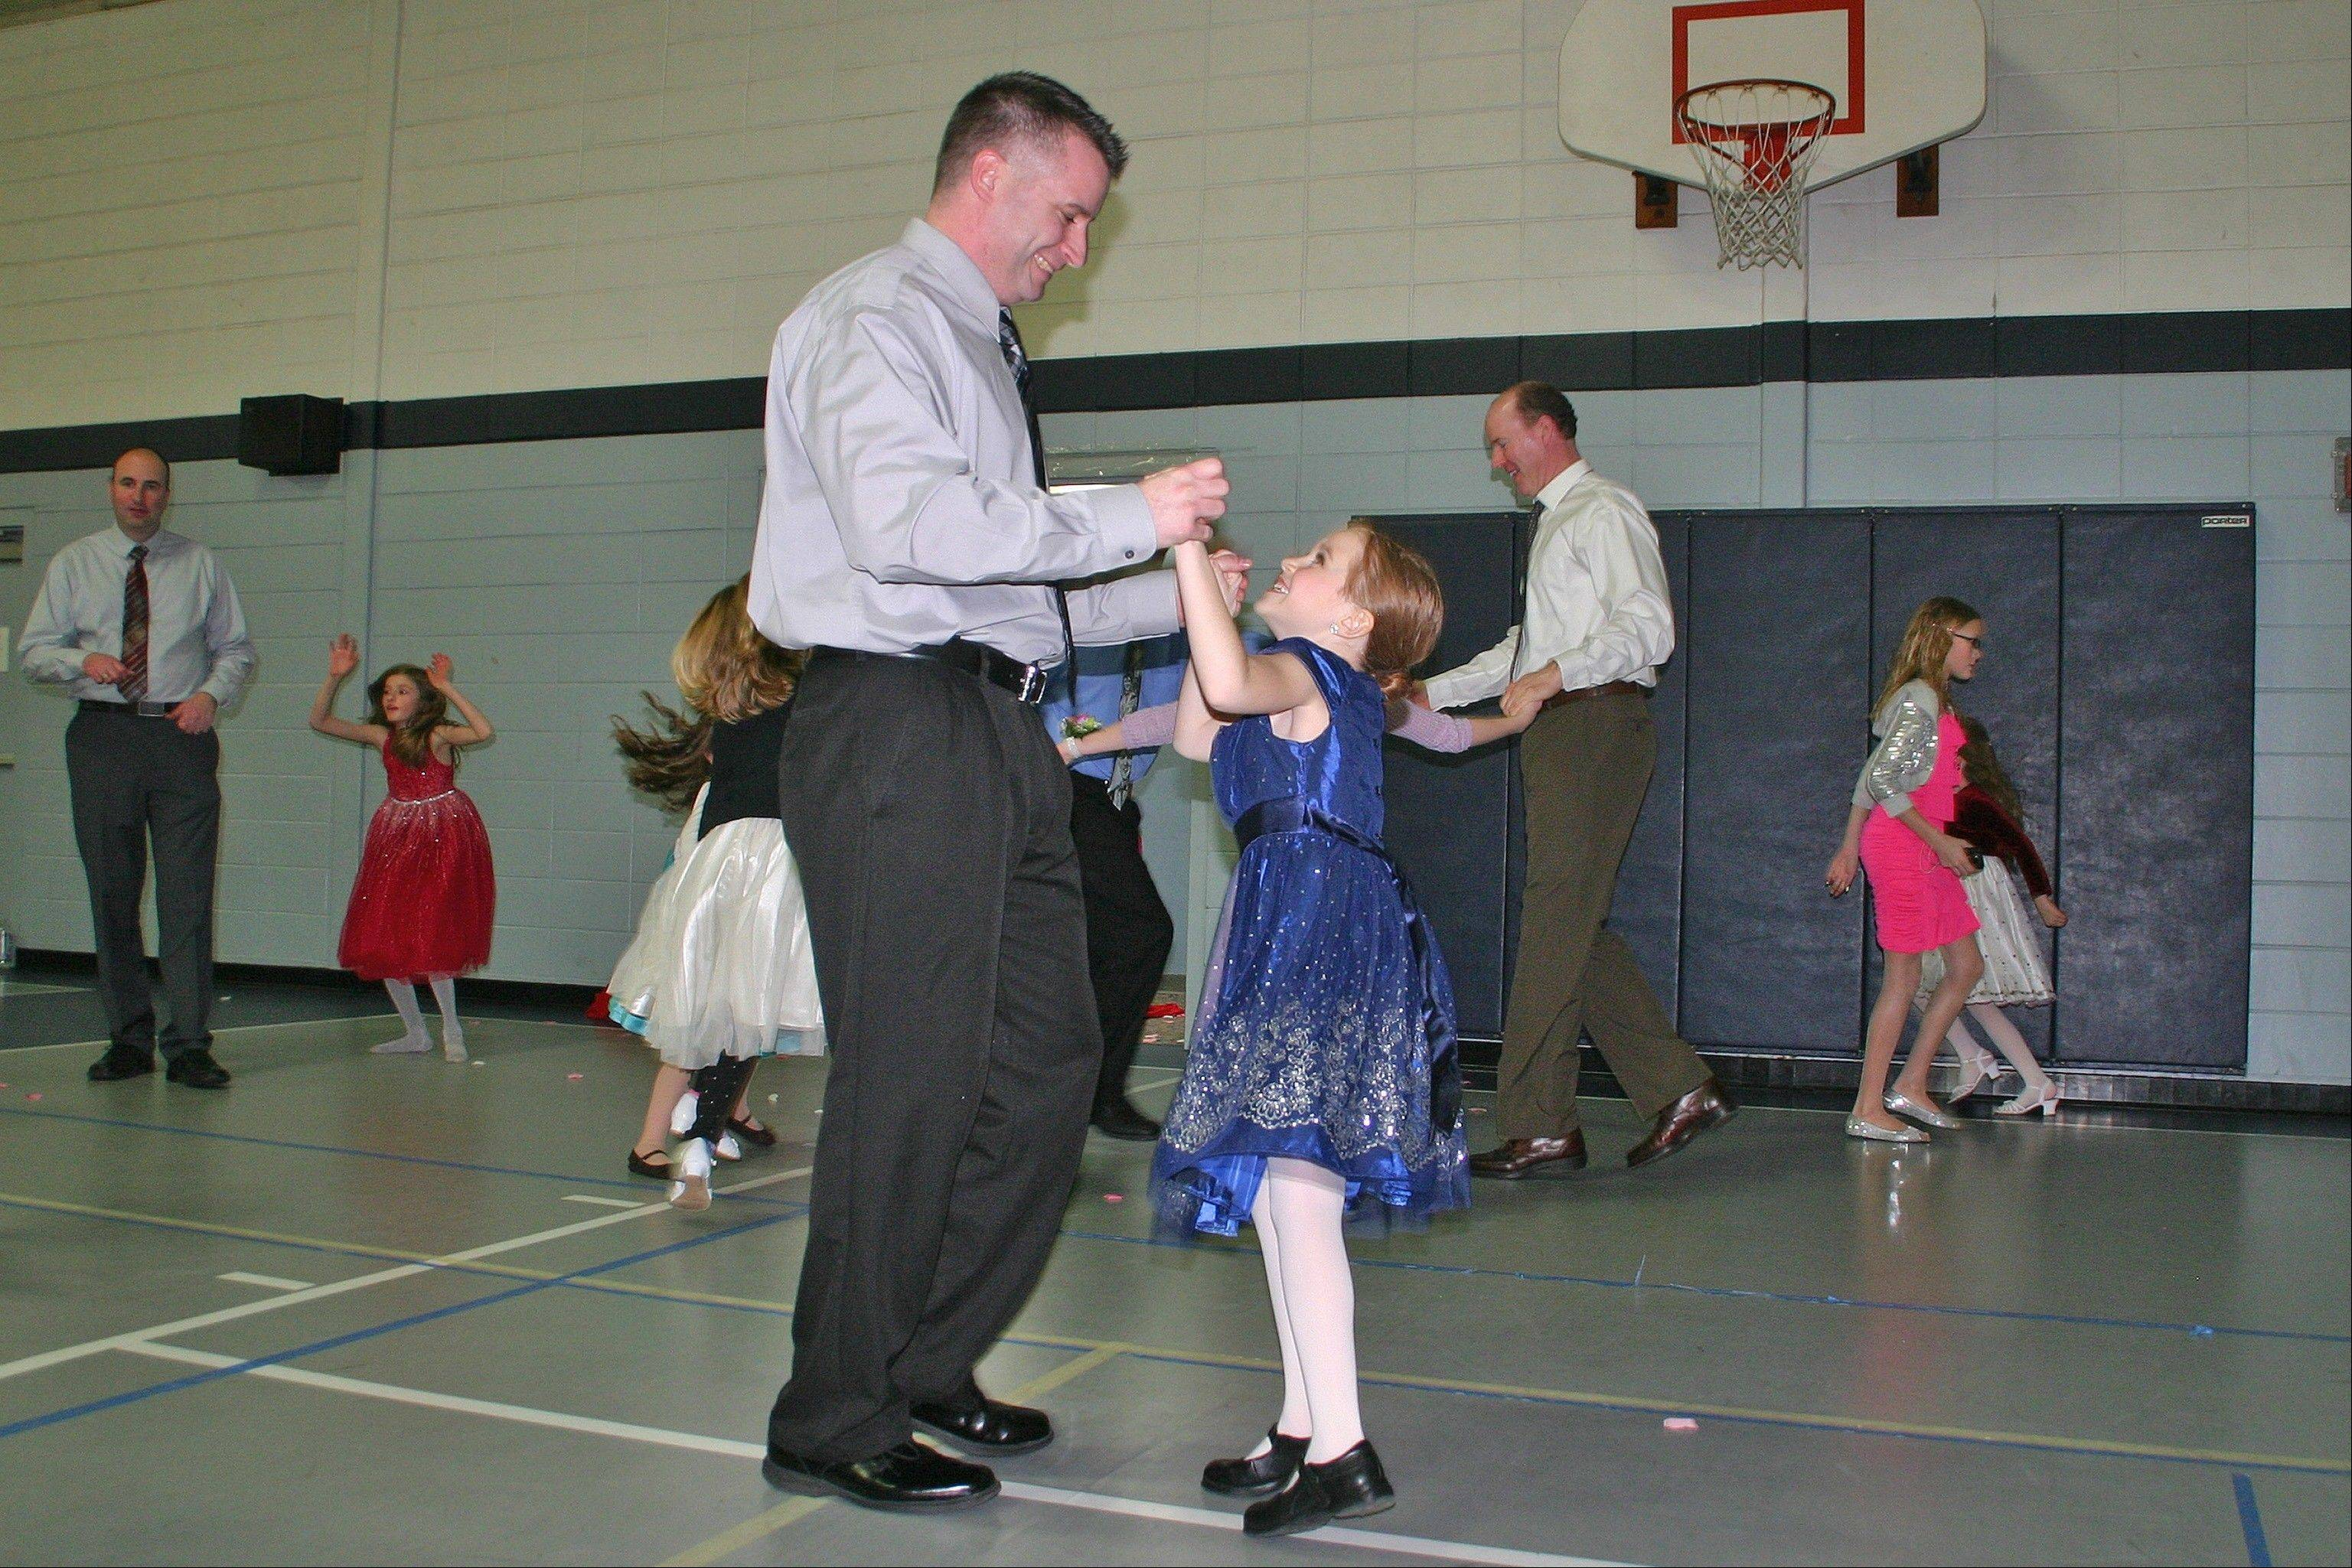 Marissa Levin only has eyes for her father, David, at the Des Plaines Park District annual Royal Ball on Feb. 9.